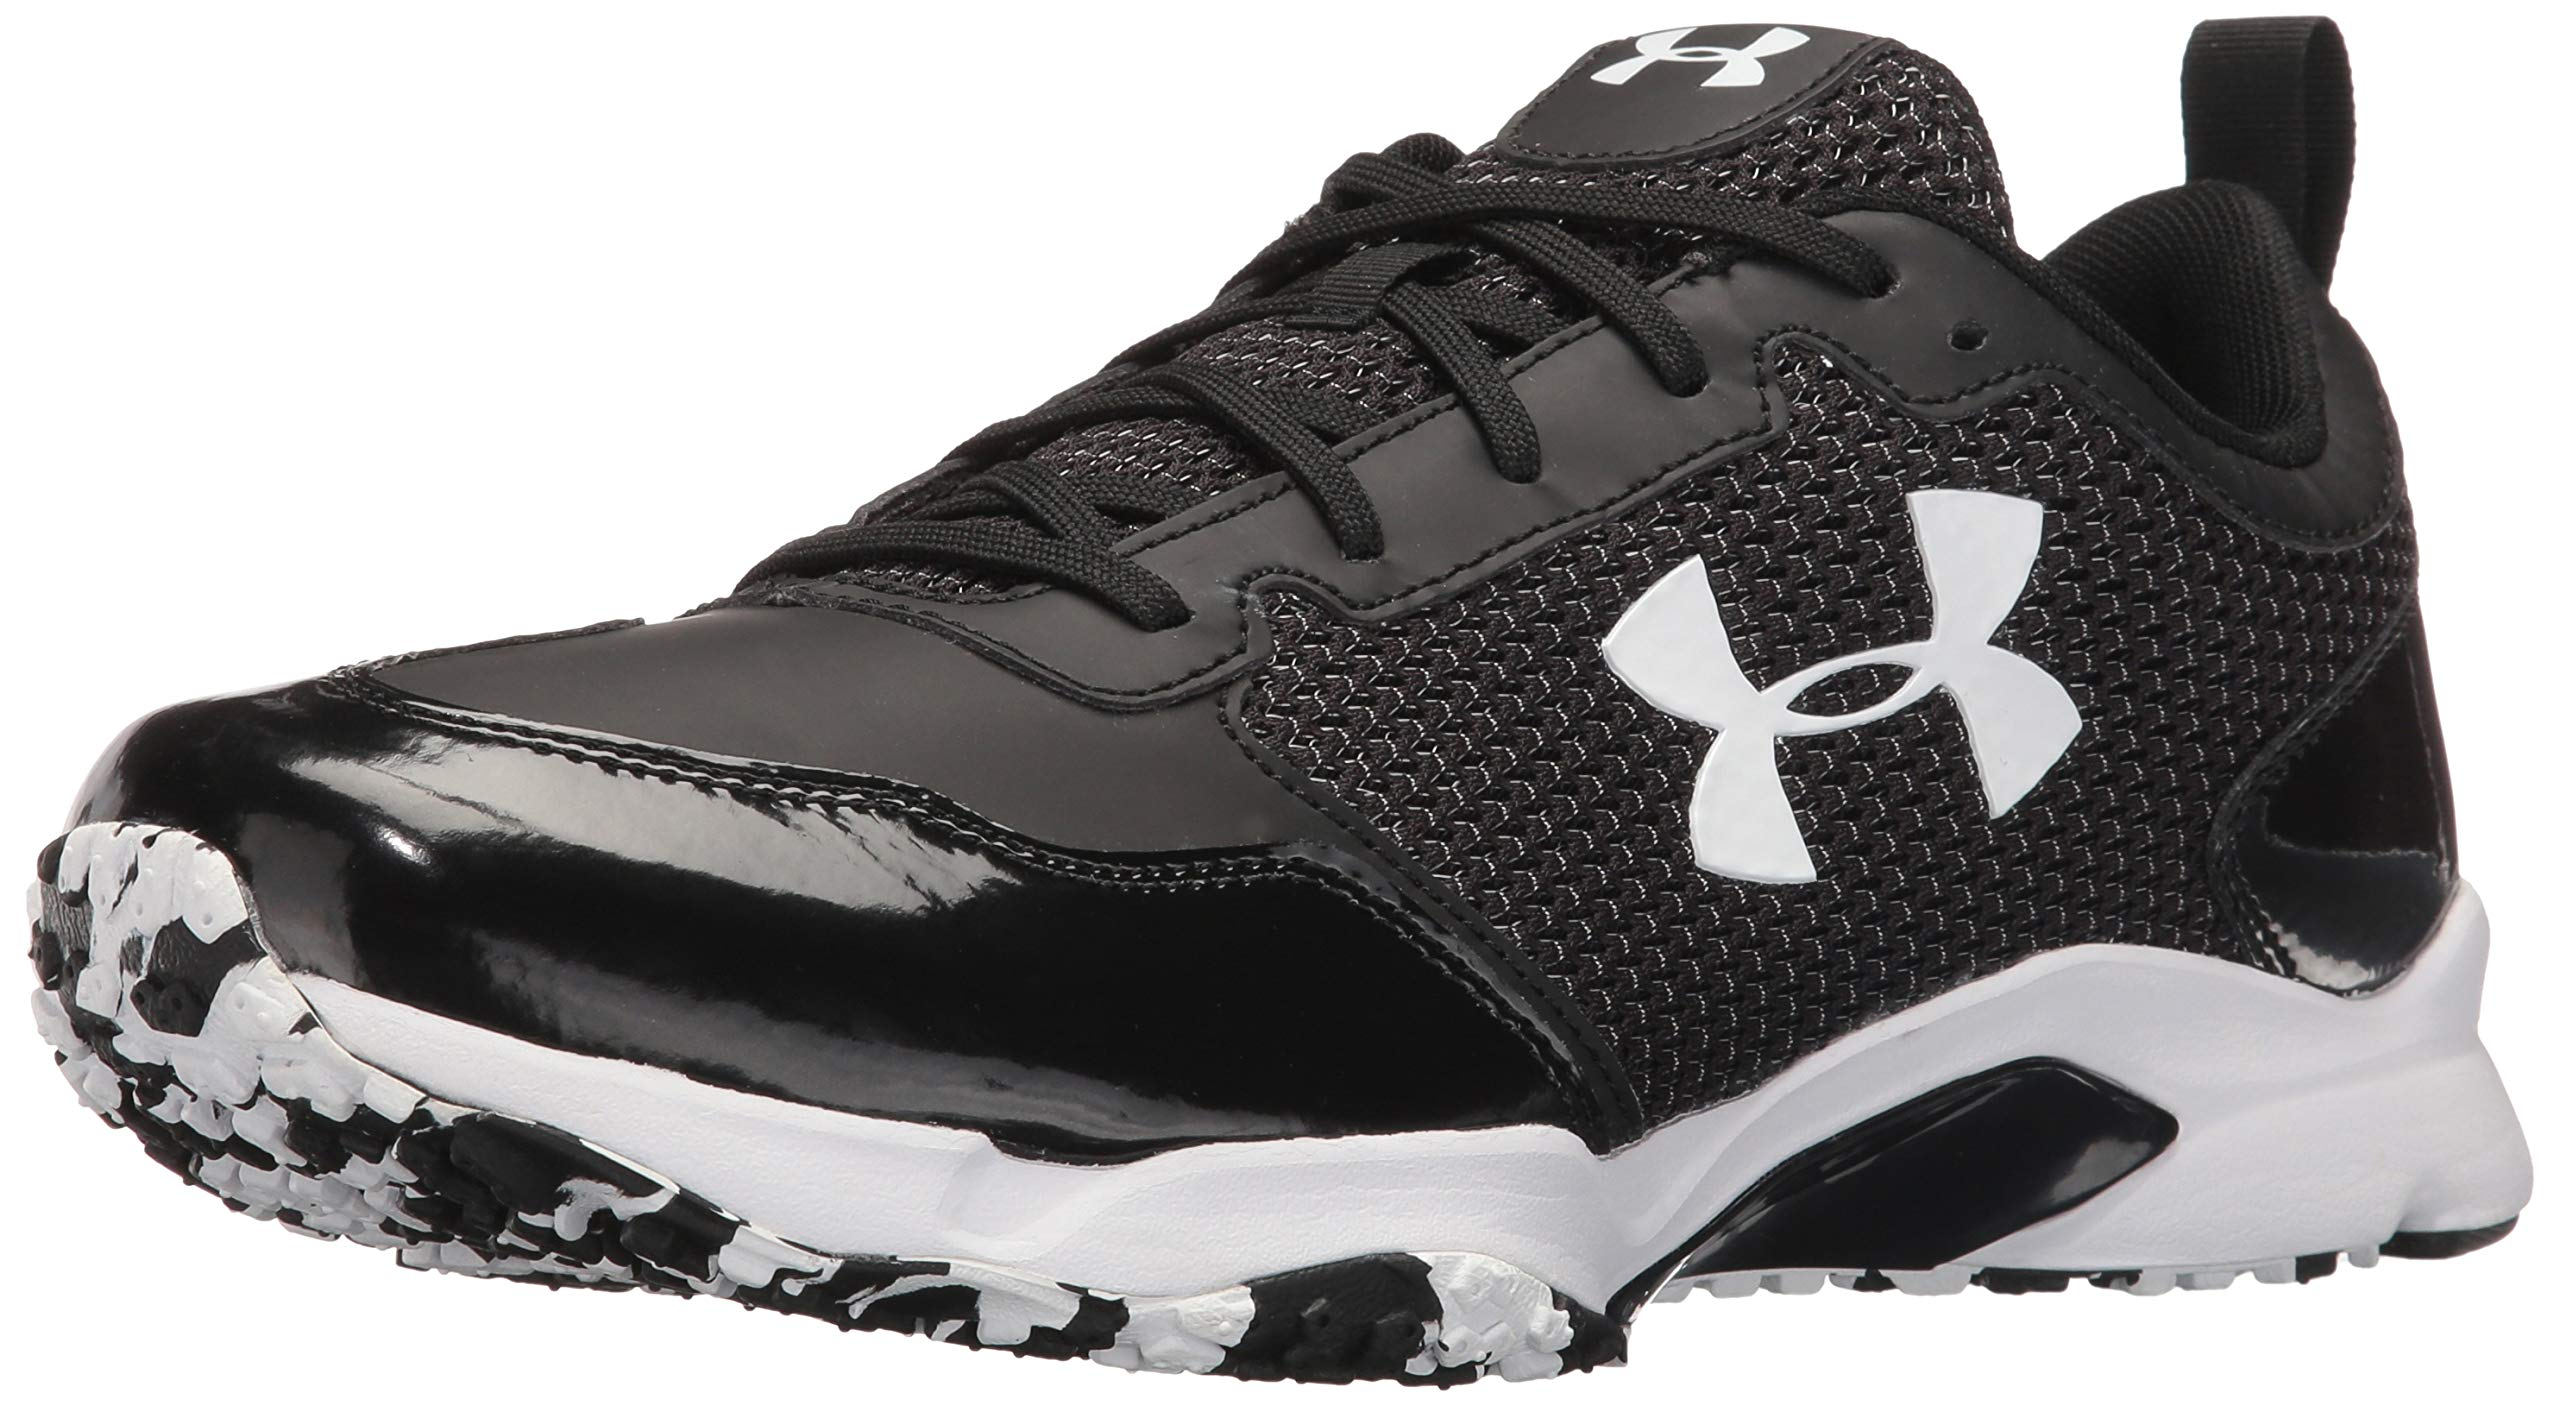 Under Armour Men's Ultimate Turf Trainer, Black (001)/Black, 9.5